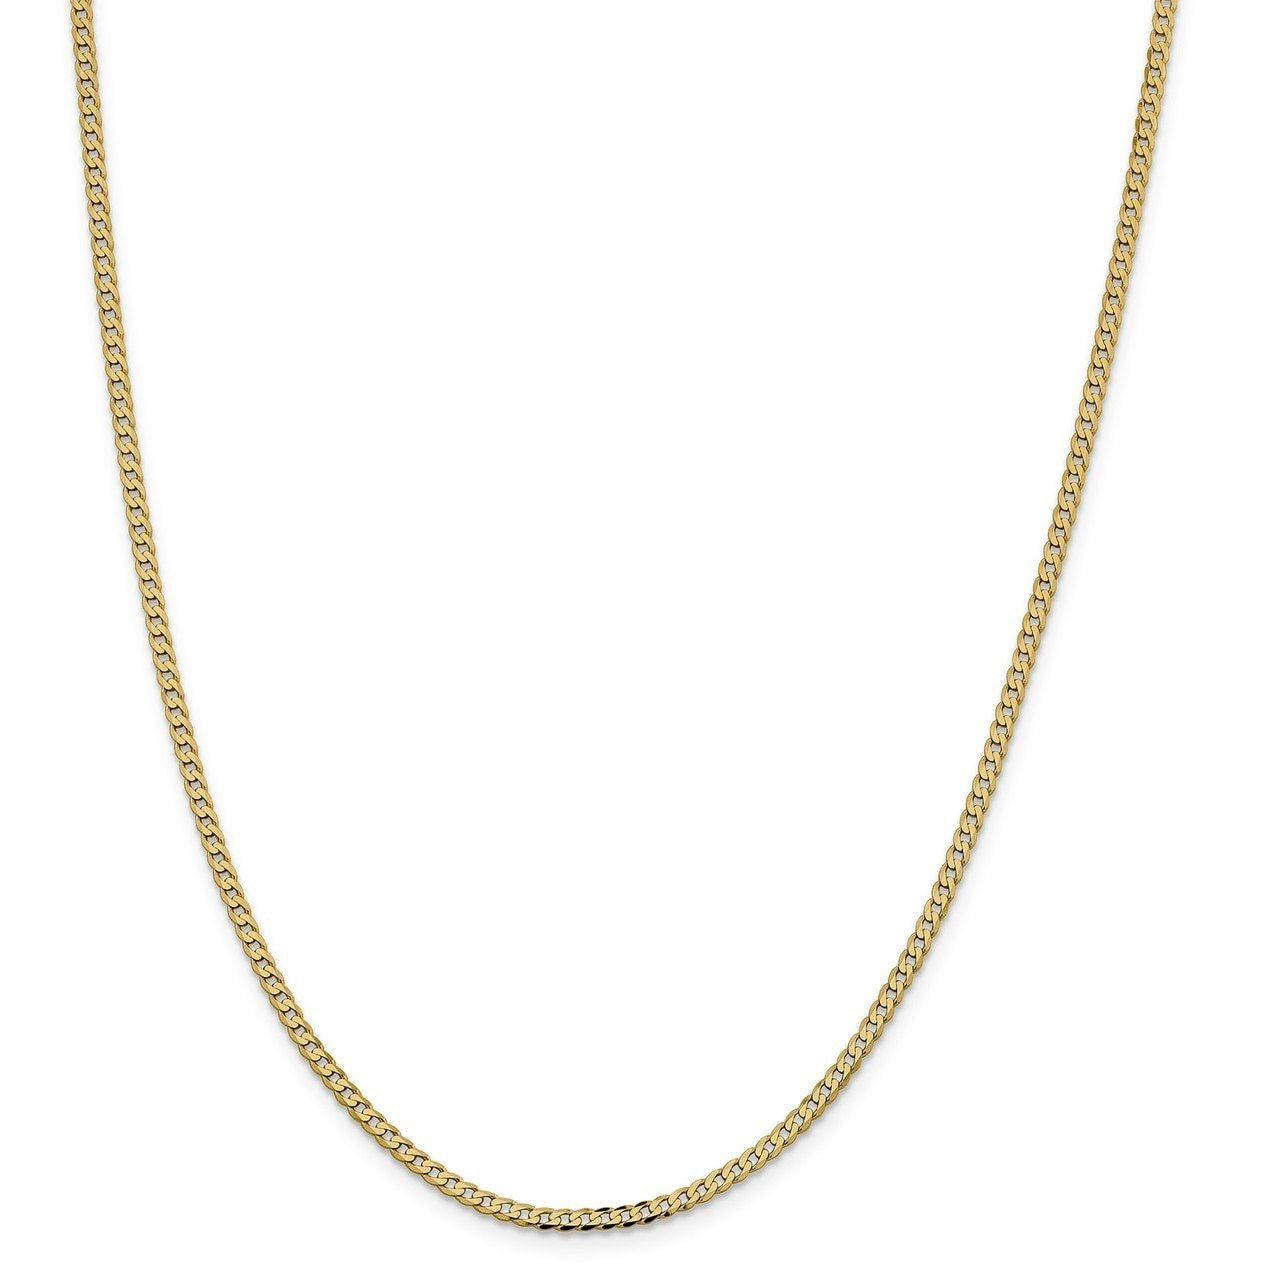 Bracelet or Necklace Lex /& Lu 14k Yellow Gold 2.3mm Beveled Curb Chain Anklet